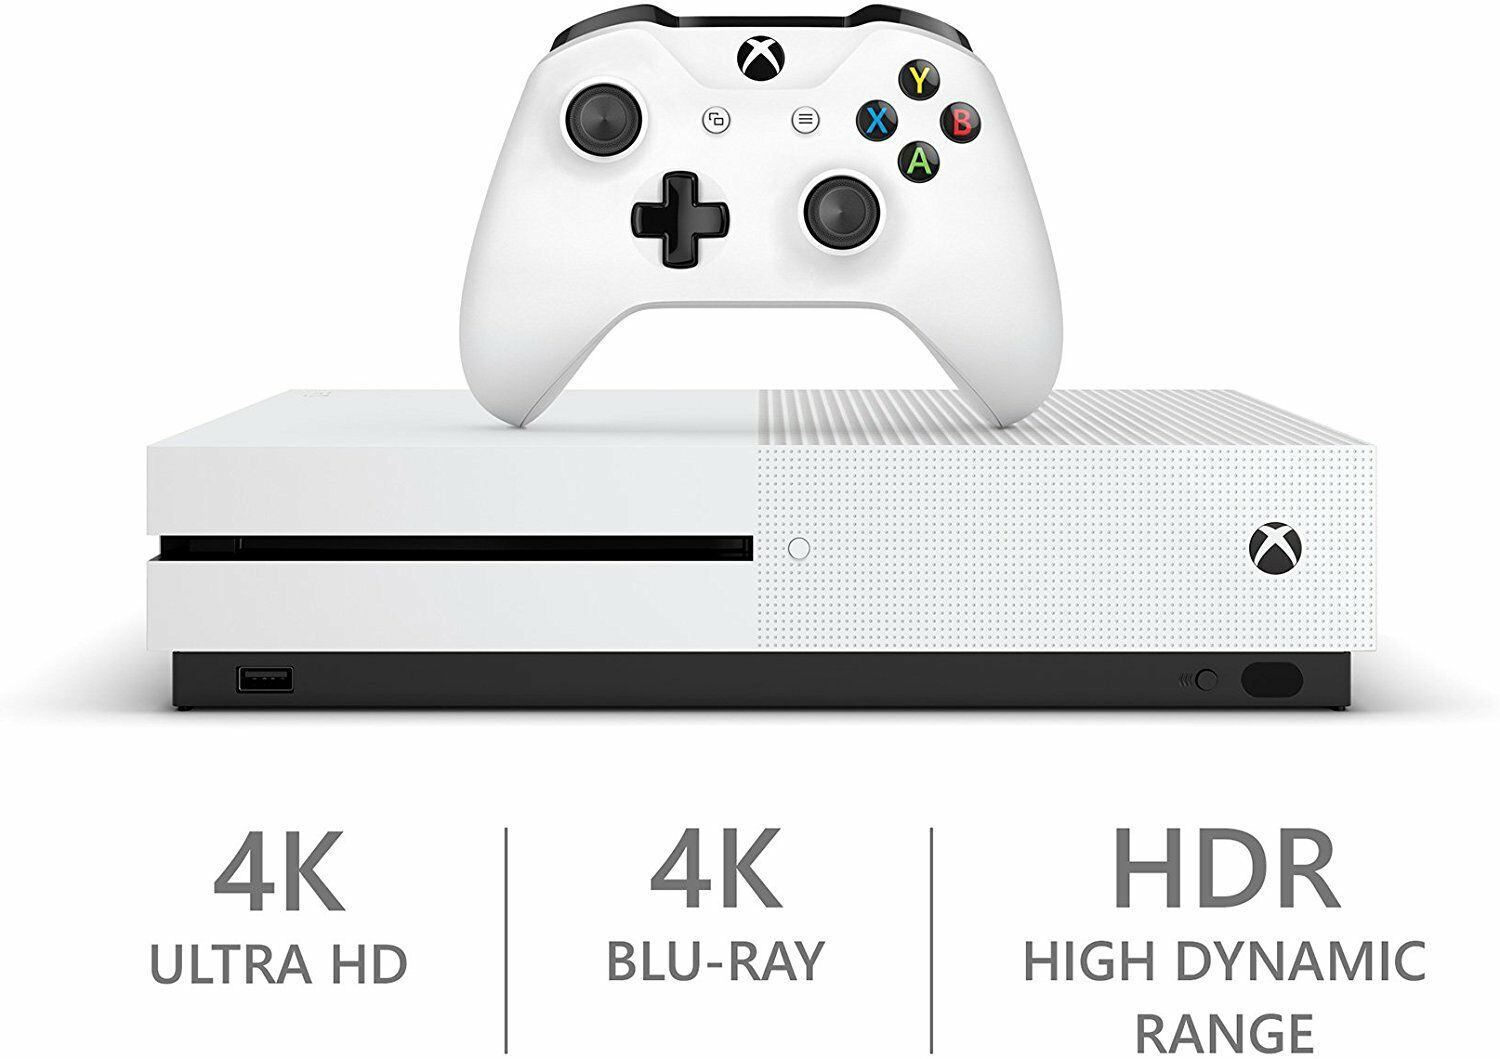 $198.99 - Xbox One S 500 GB White Console - Refurbished